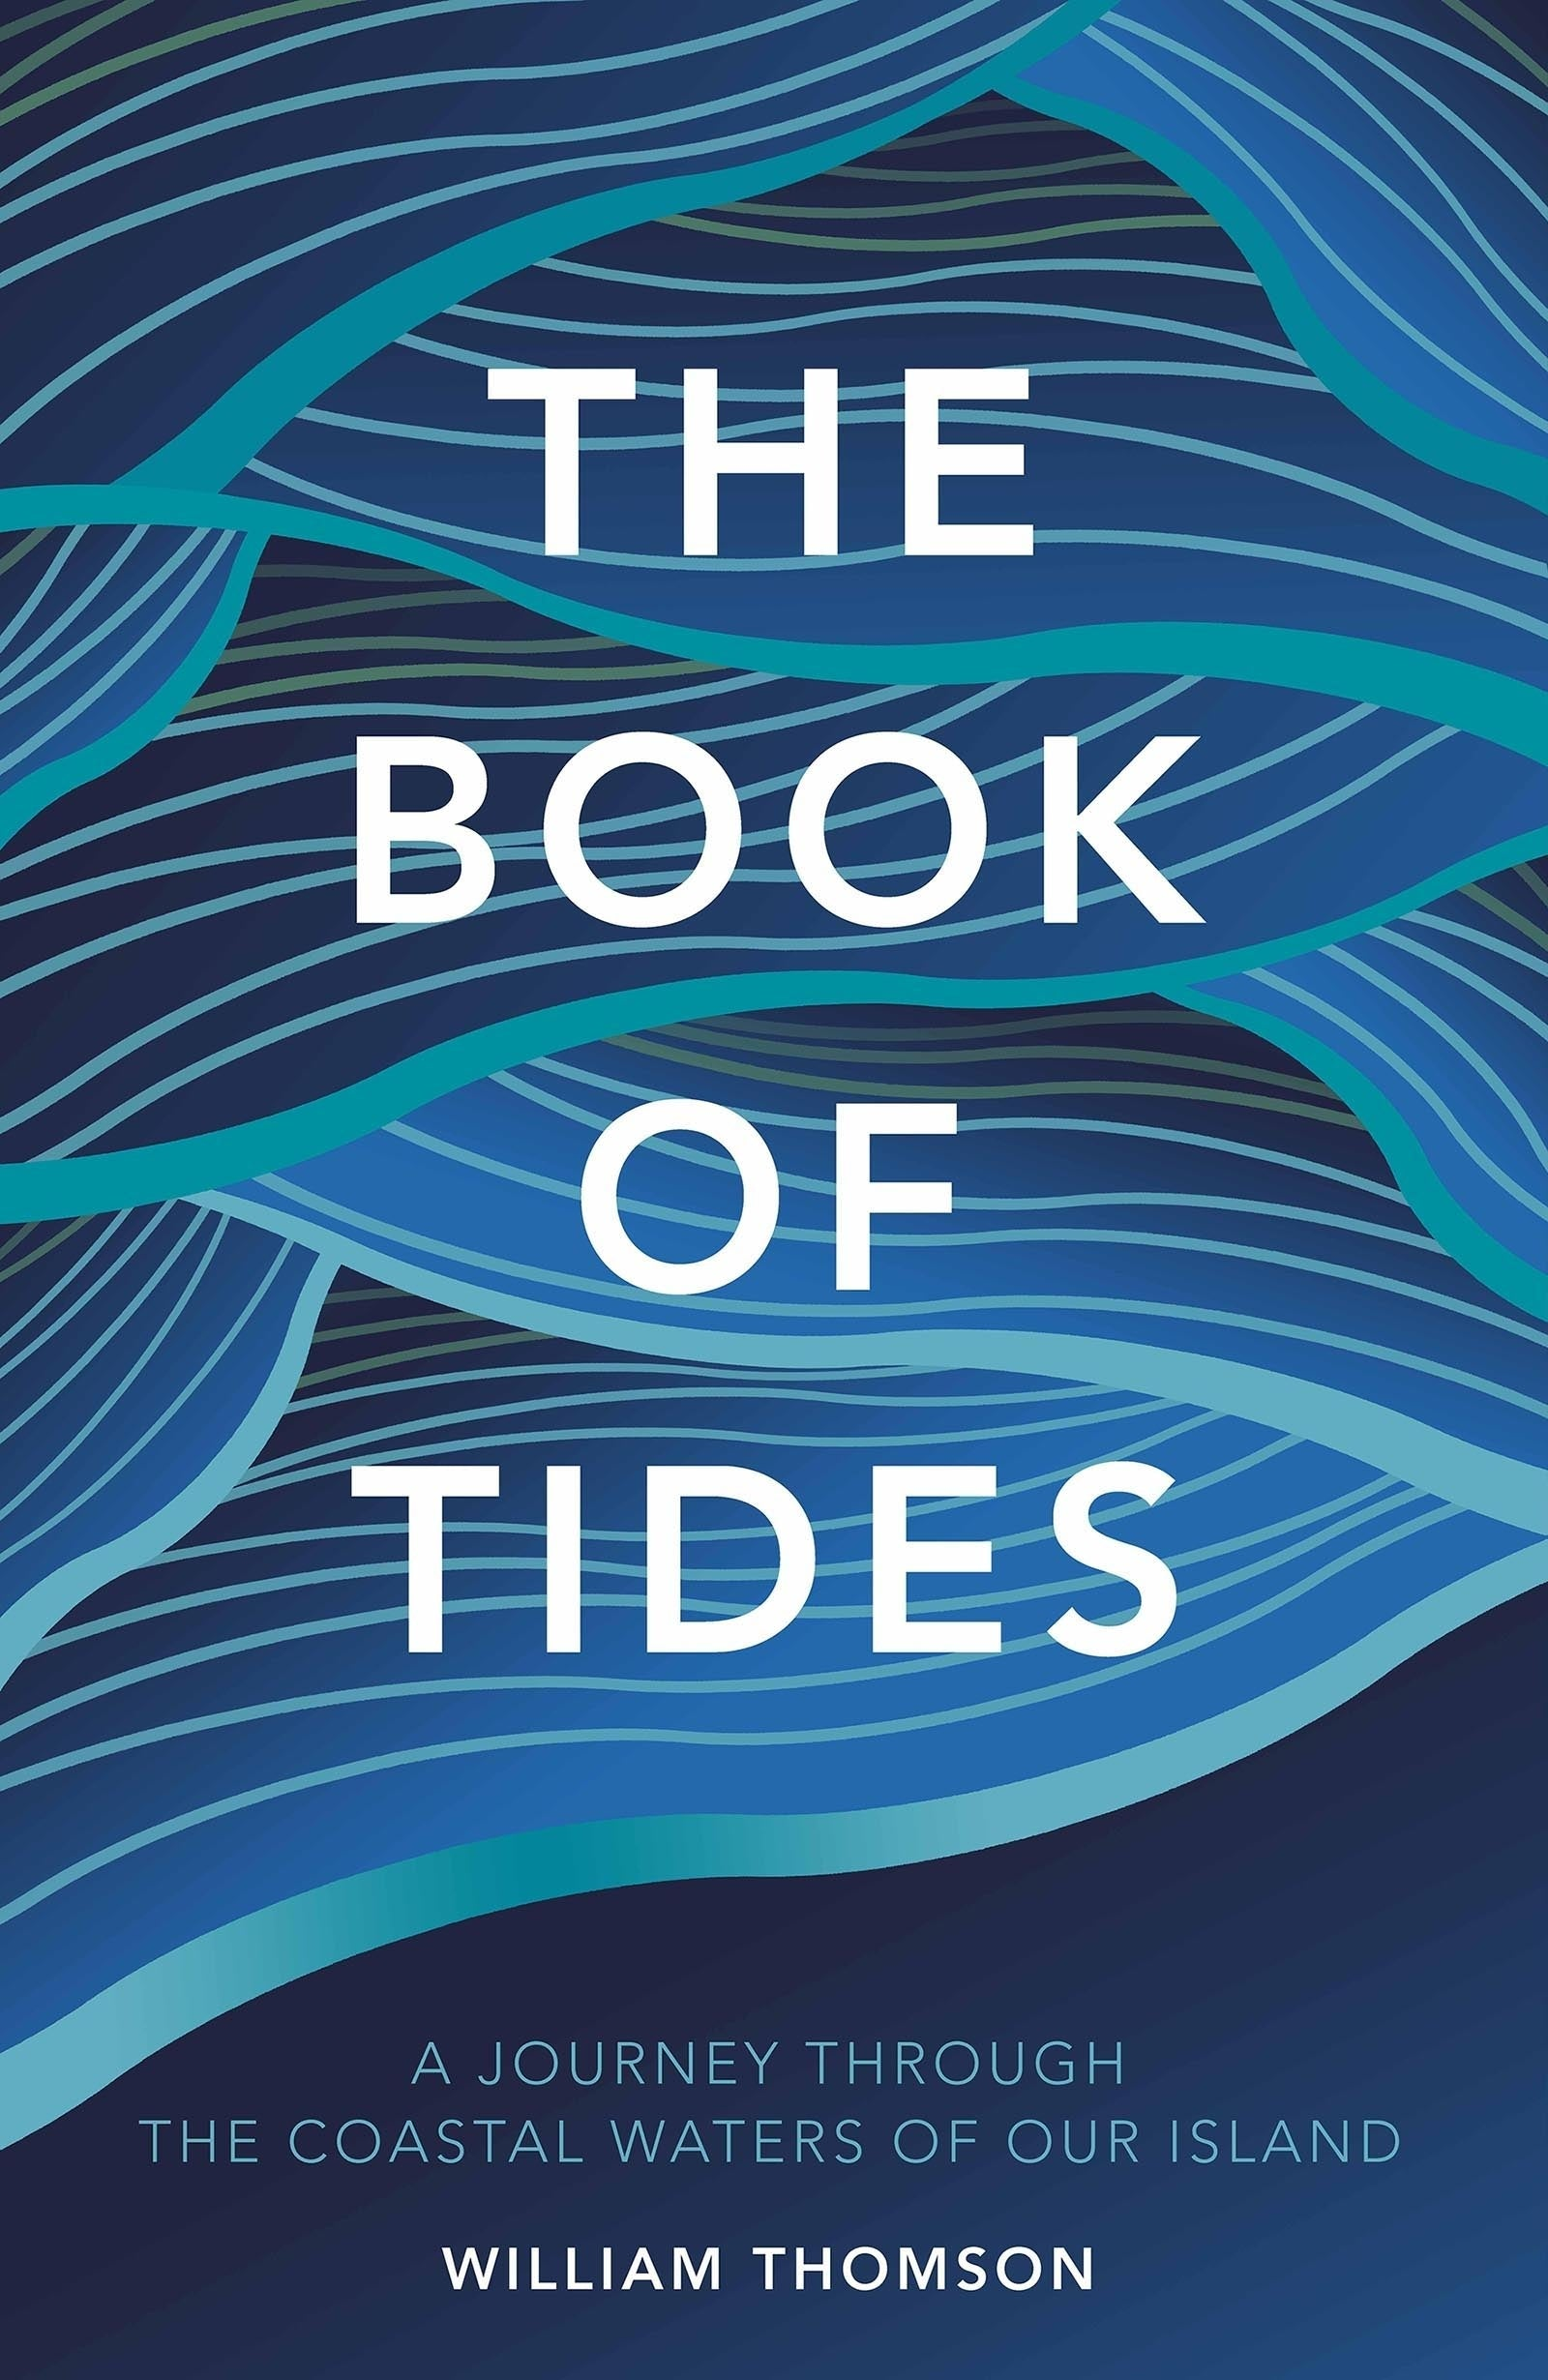 Book of Tides by William Thomson